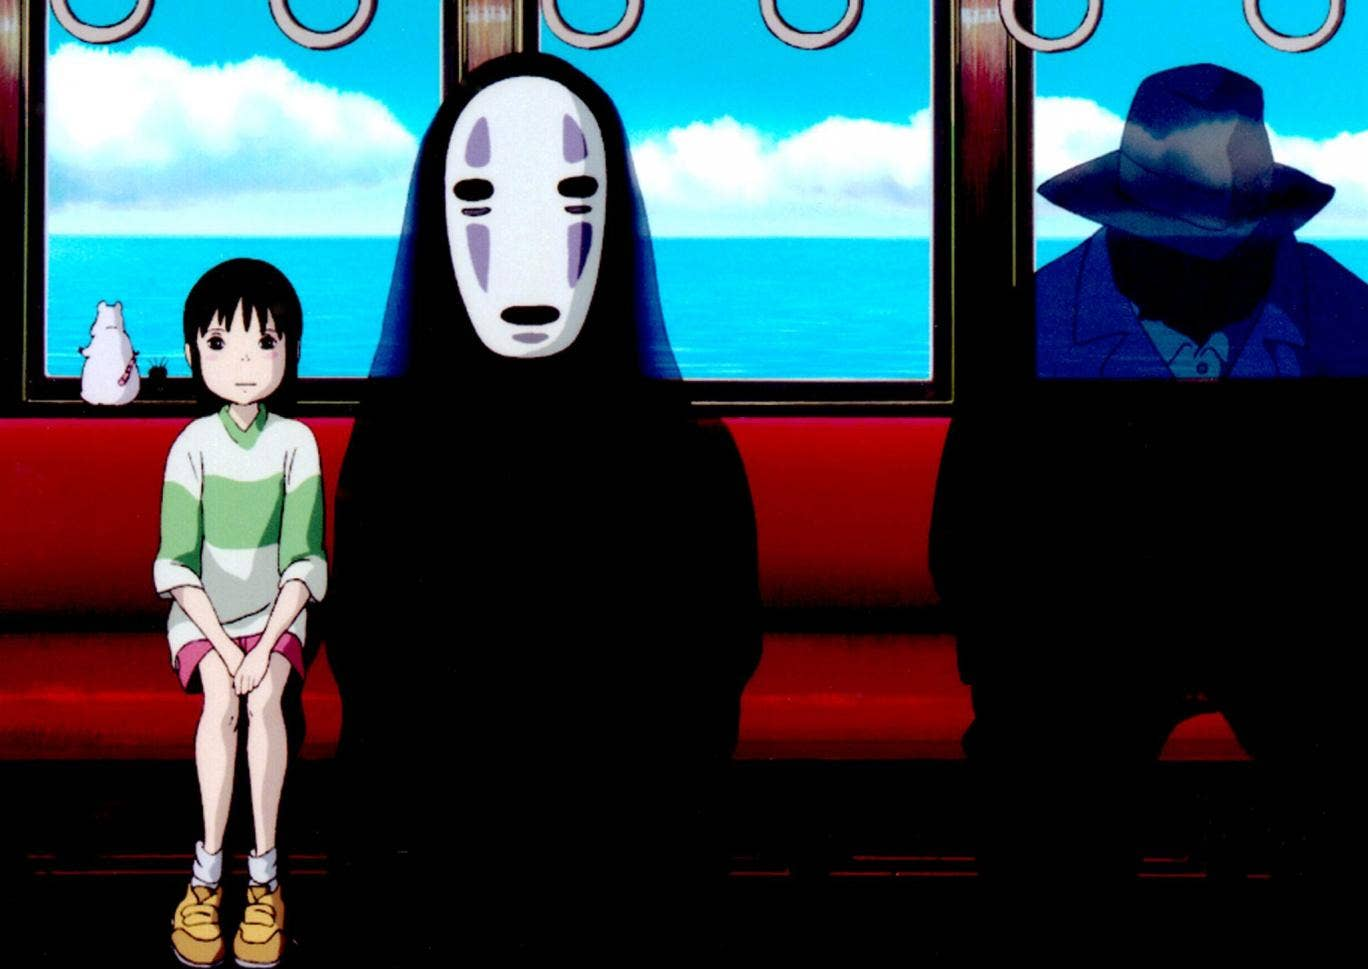 Chihiro and No Face in Studio Ghibli's Spirited Away (2001)